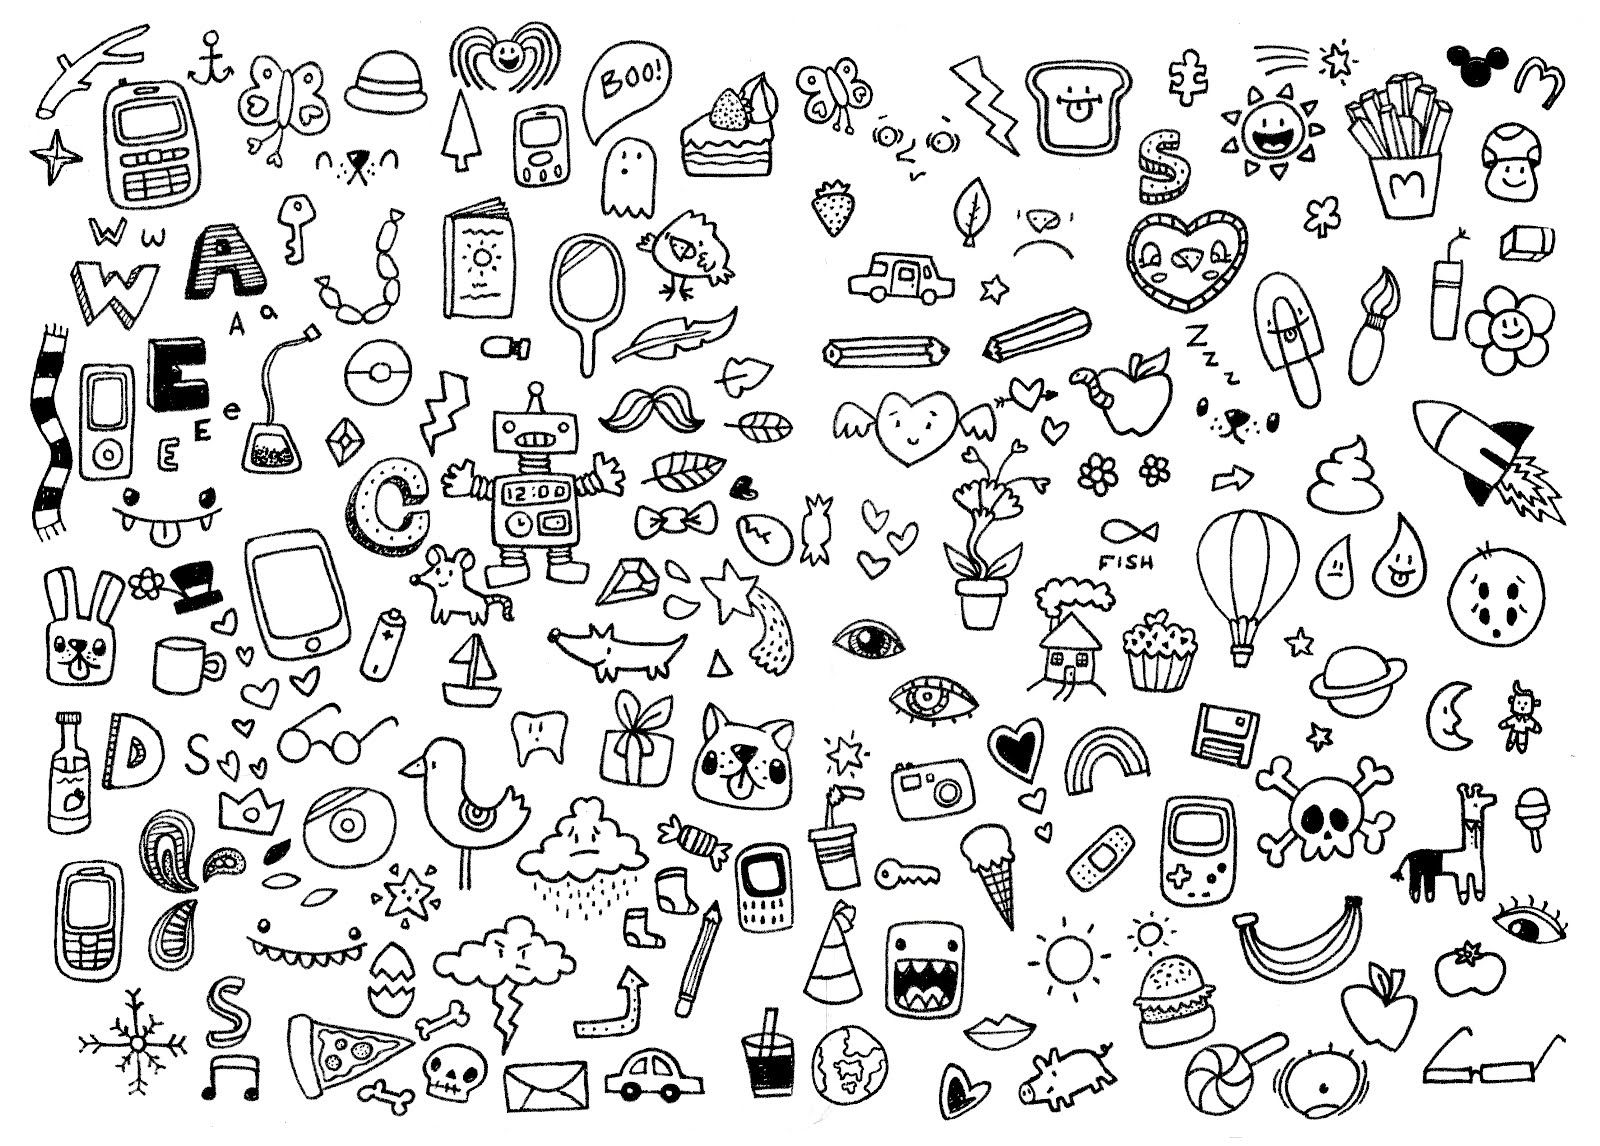 Cute Doodles To Draw Easy Cute Easy To Draw Doodles With Images